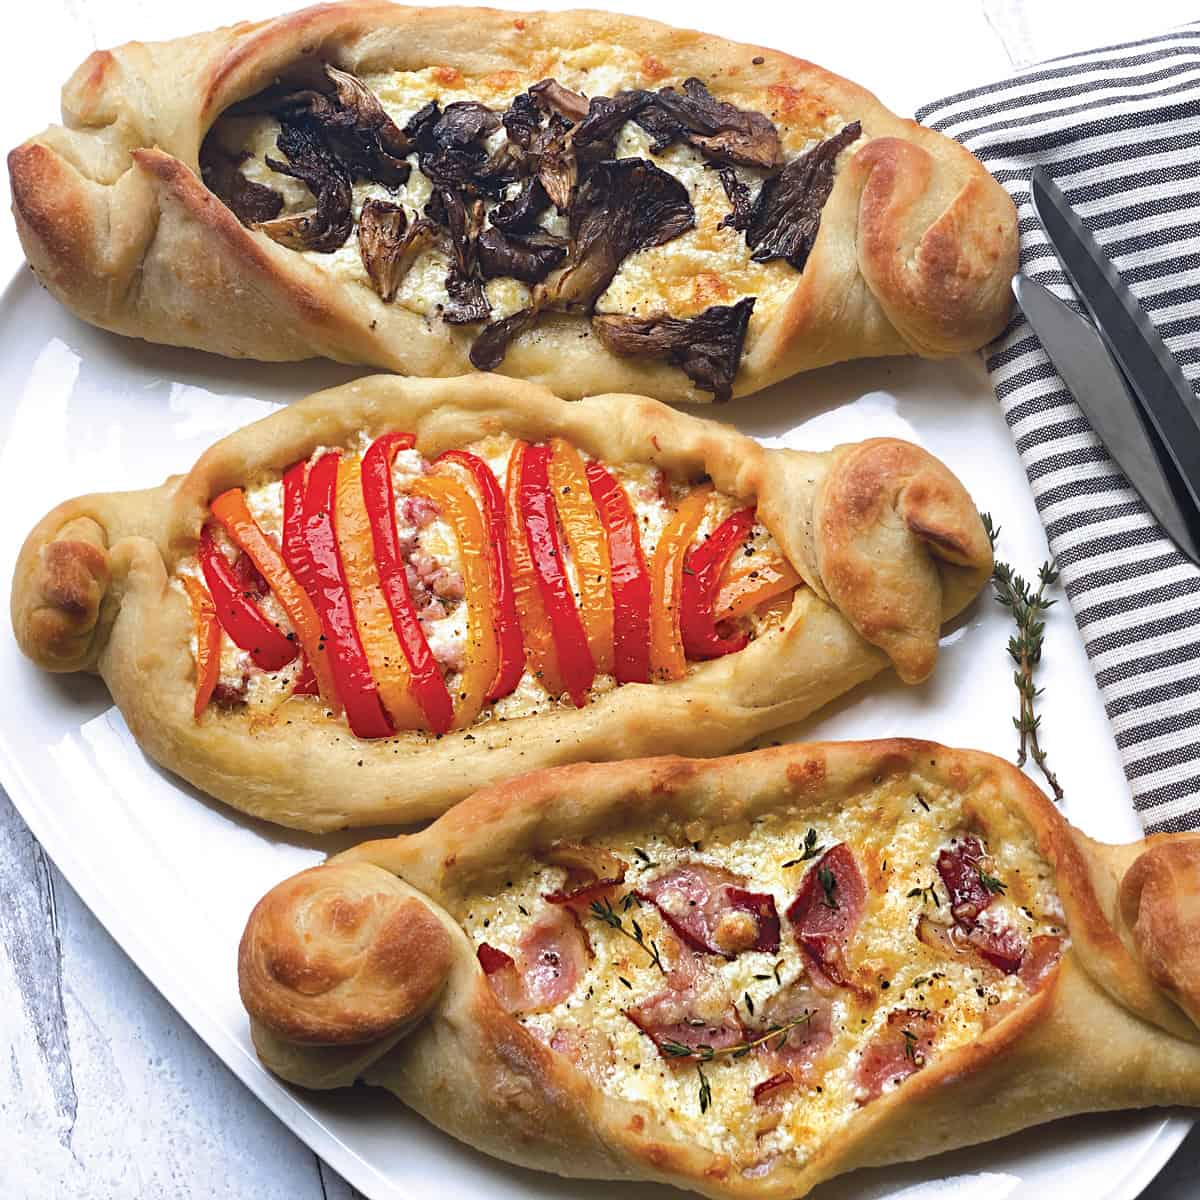 Peinirli-Greek pizza boats in 3 different flavors